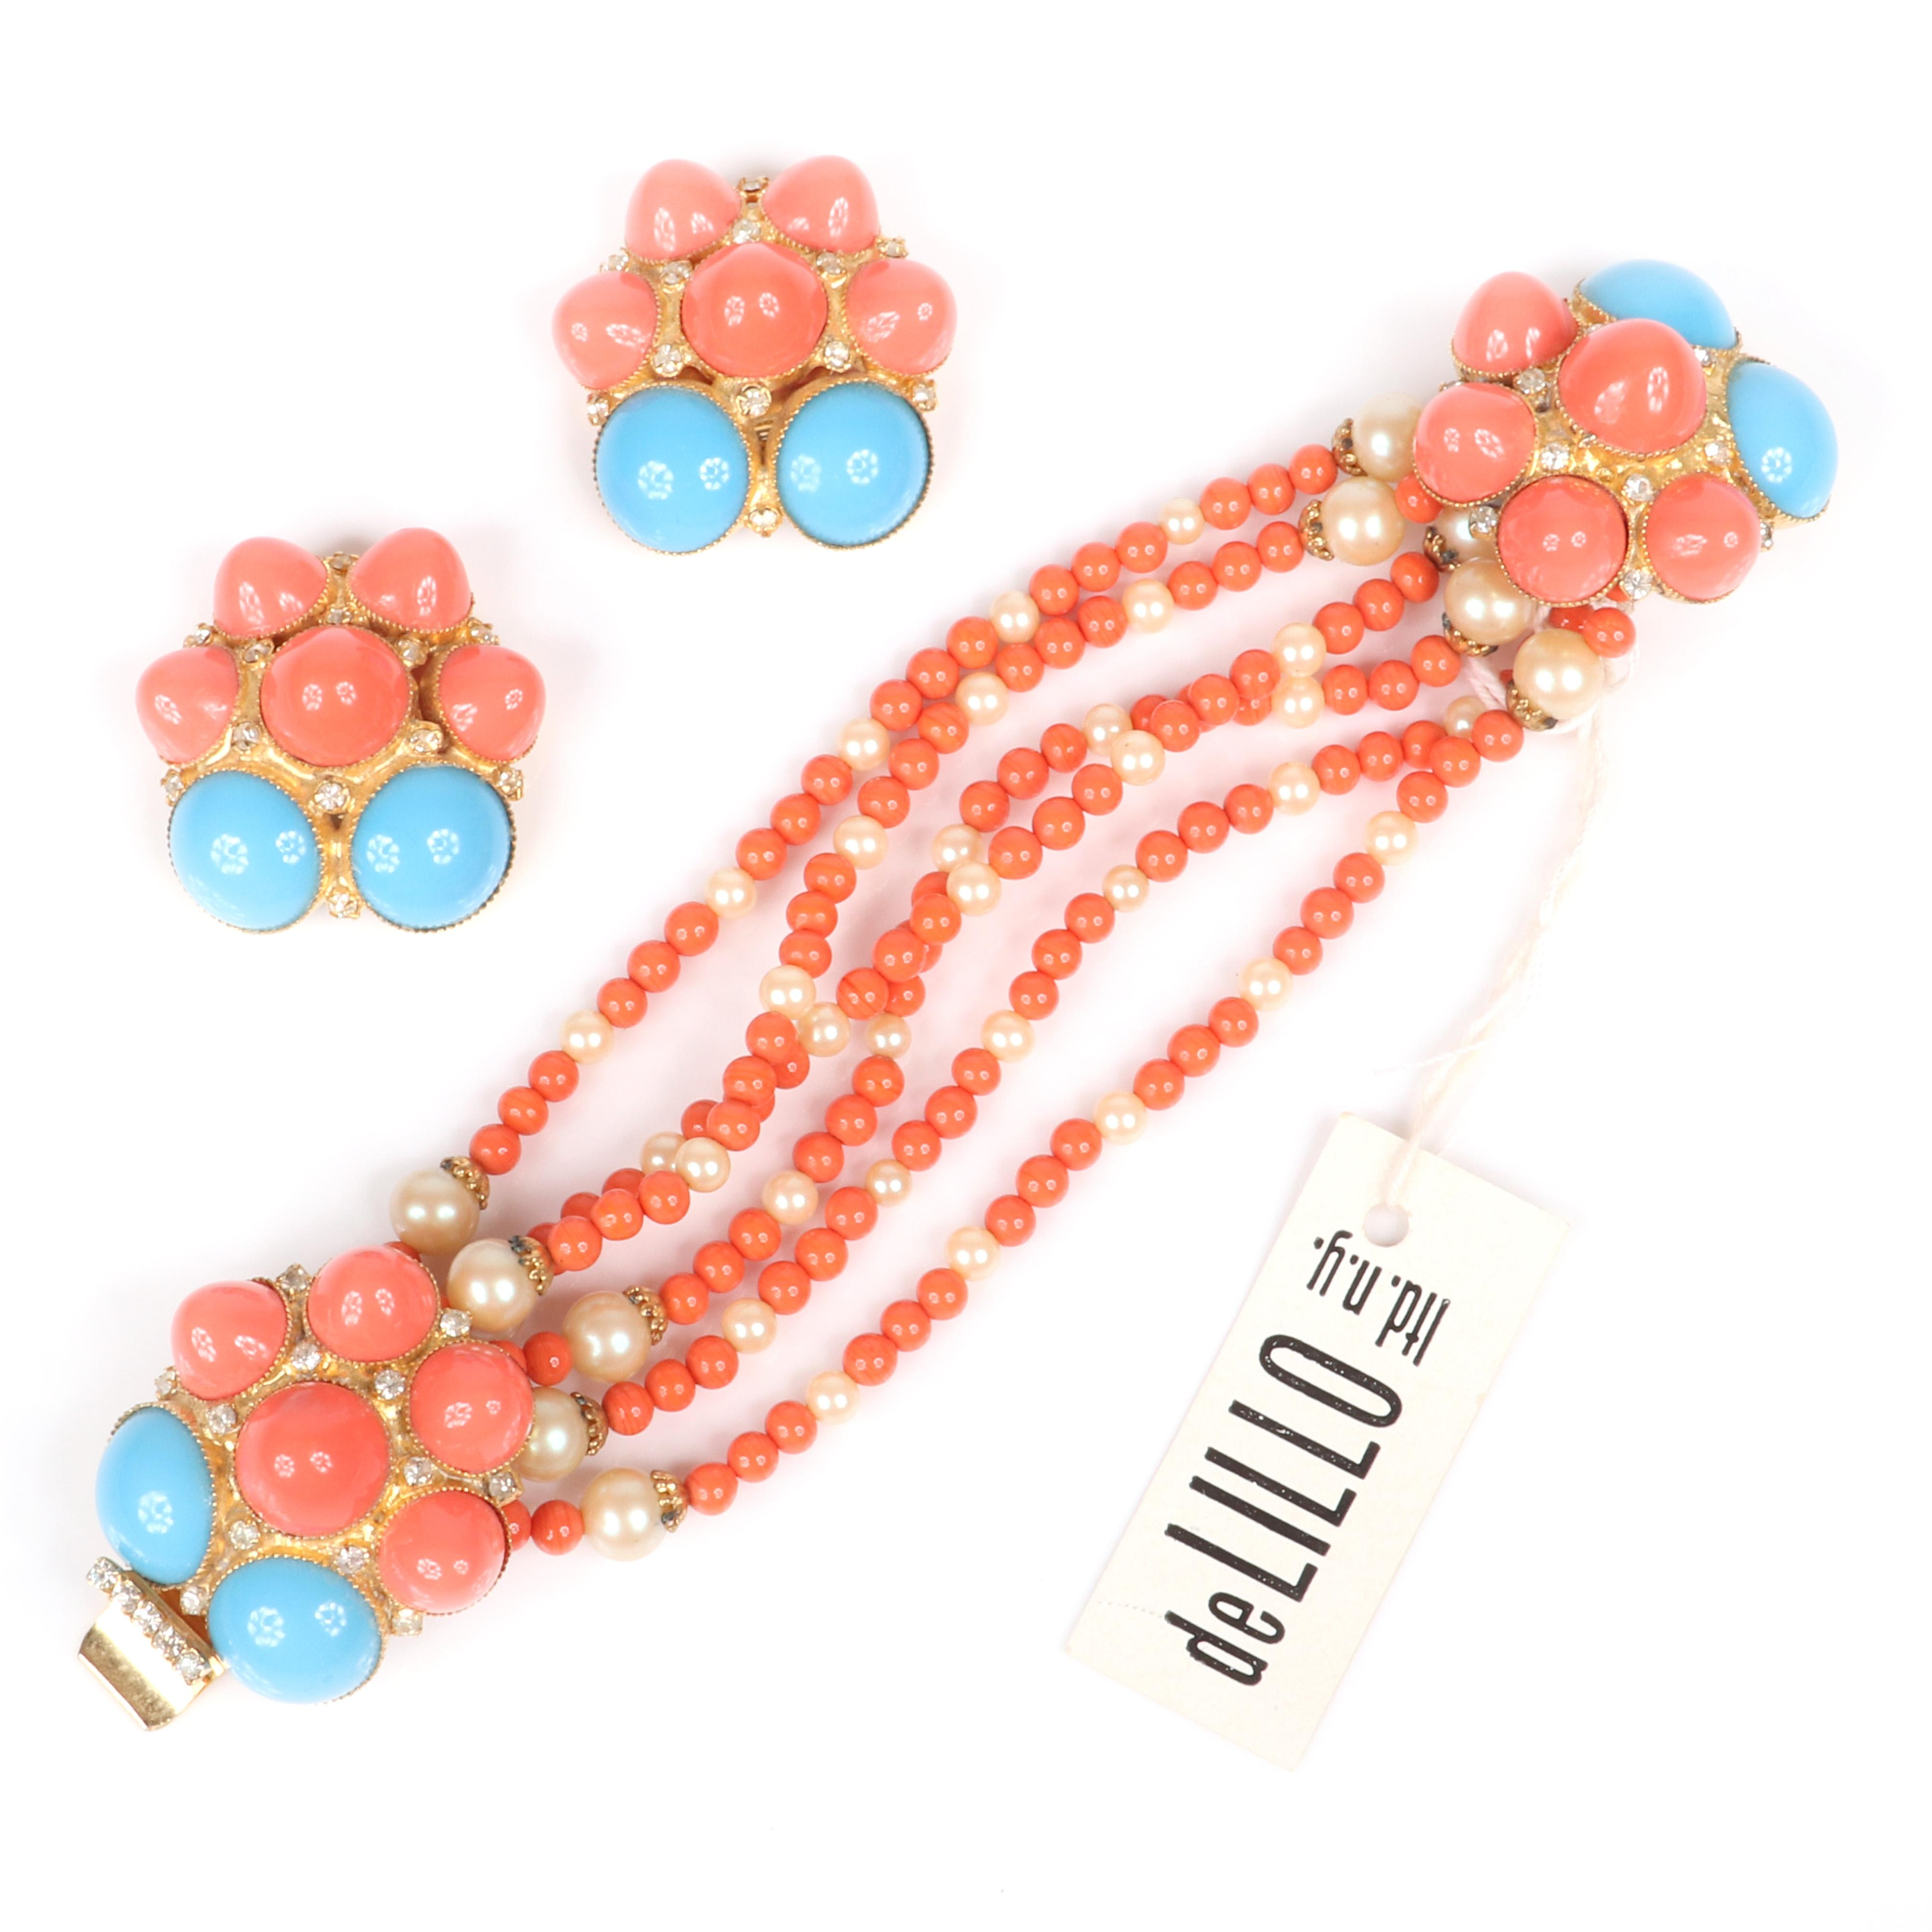 """William DeLillo demi-parure faux coral, turquoise, and pearl six-strand bracelet and earring set with domed cabochons and rhinestone details, with original tag. 7""""L (bracelet), 1 1/2"""" diam. (earrings and clasps)"""